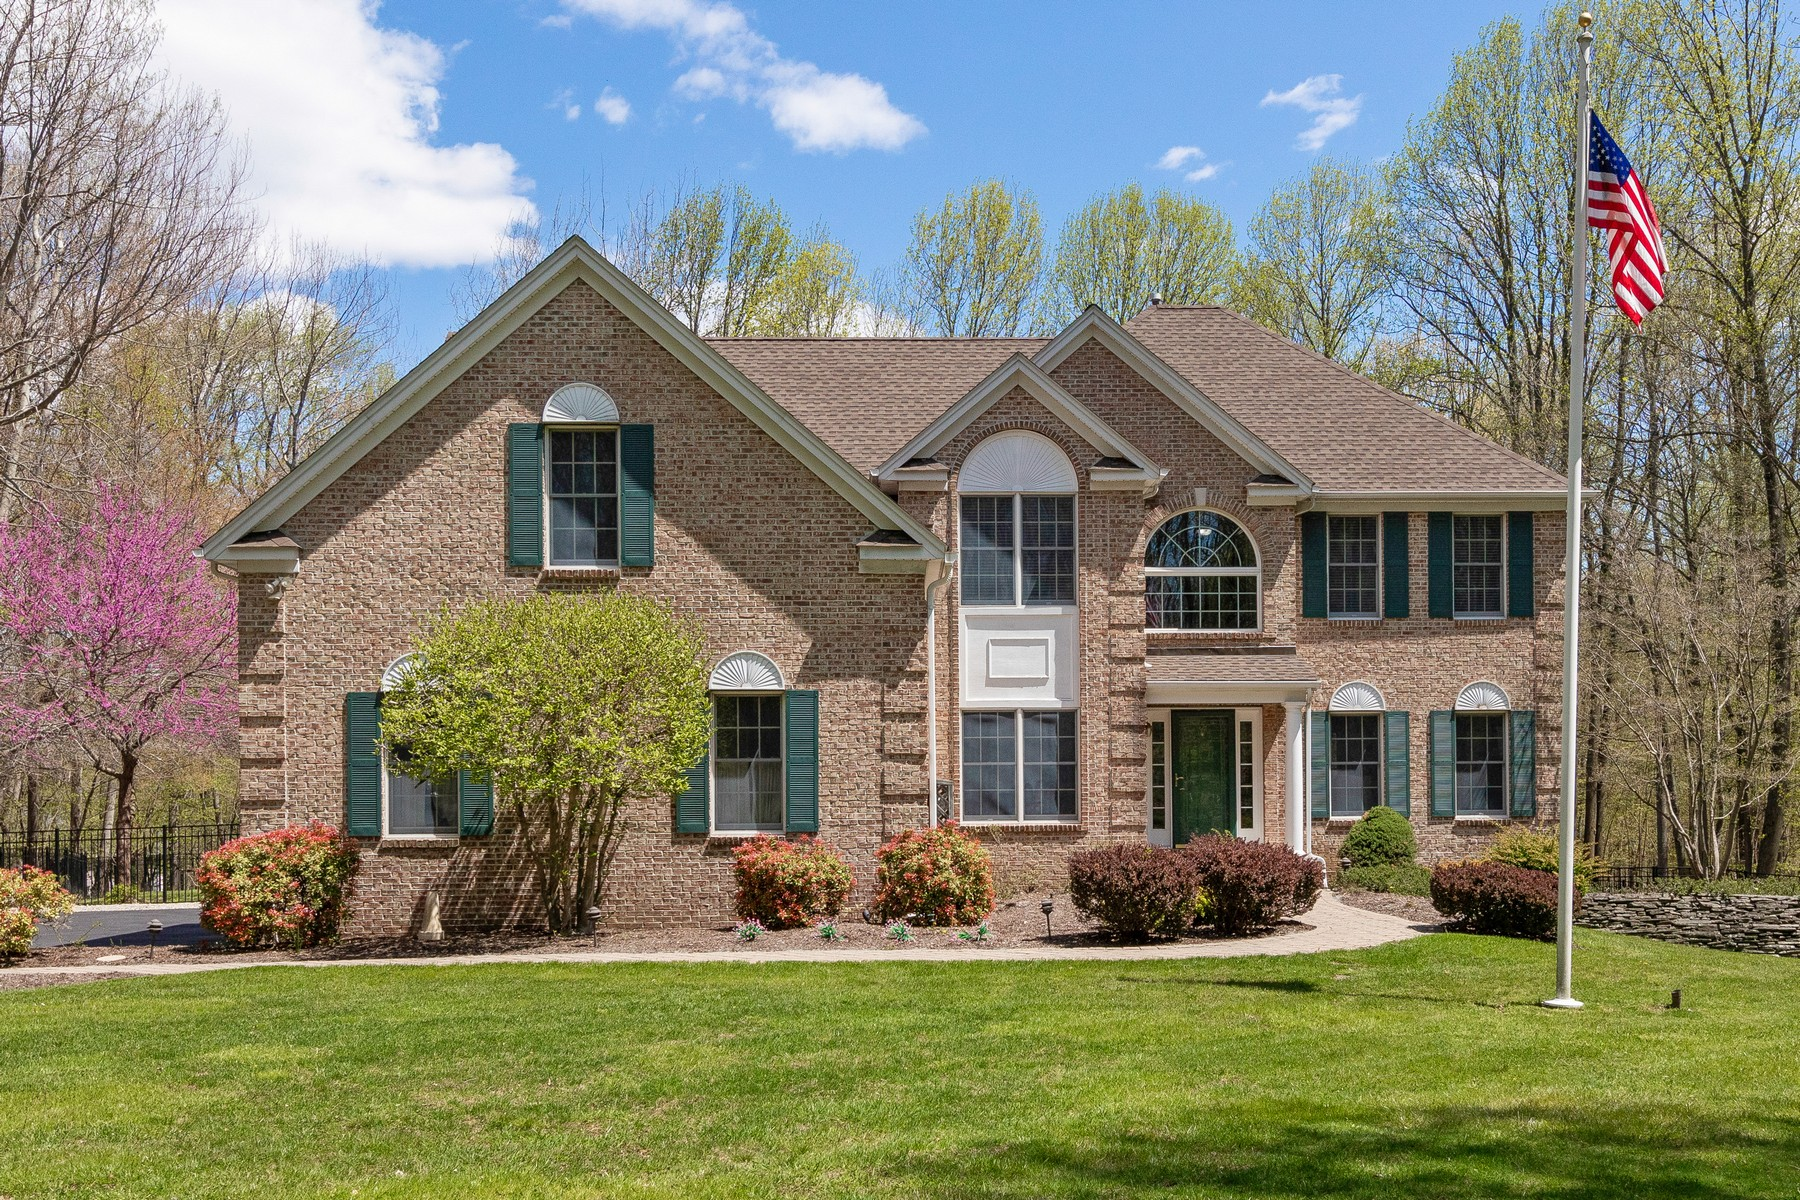 Single Family Homes for Sale at Classic Colonial 9 Wellington Drive Long Valley, New Jersey 07853 United States